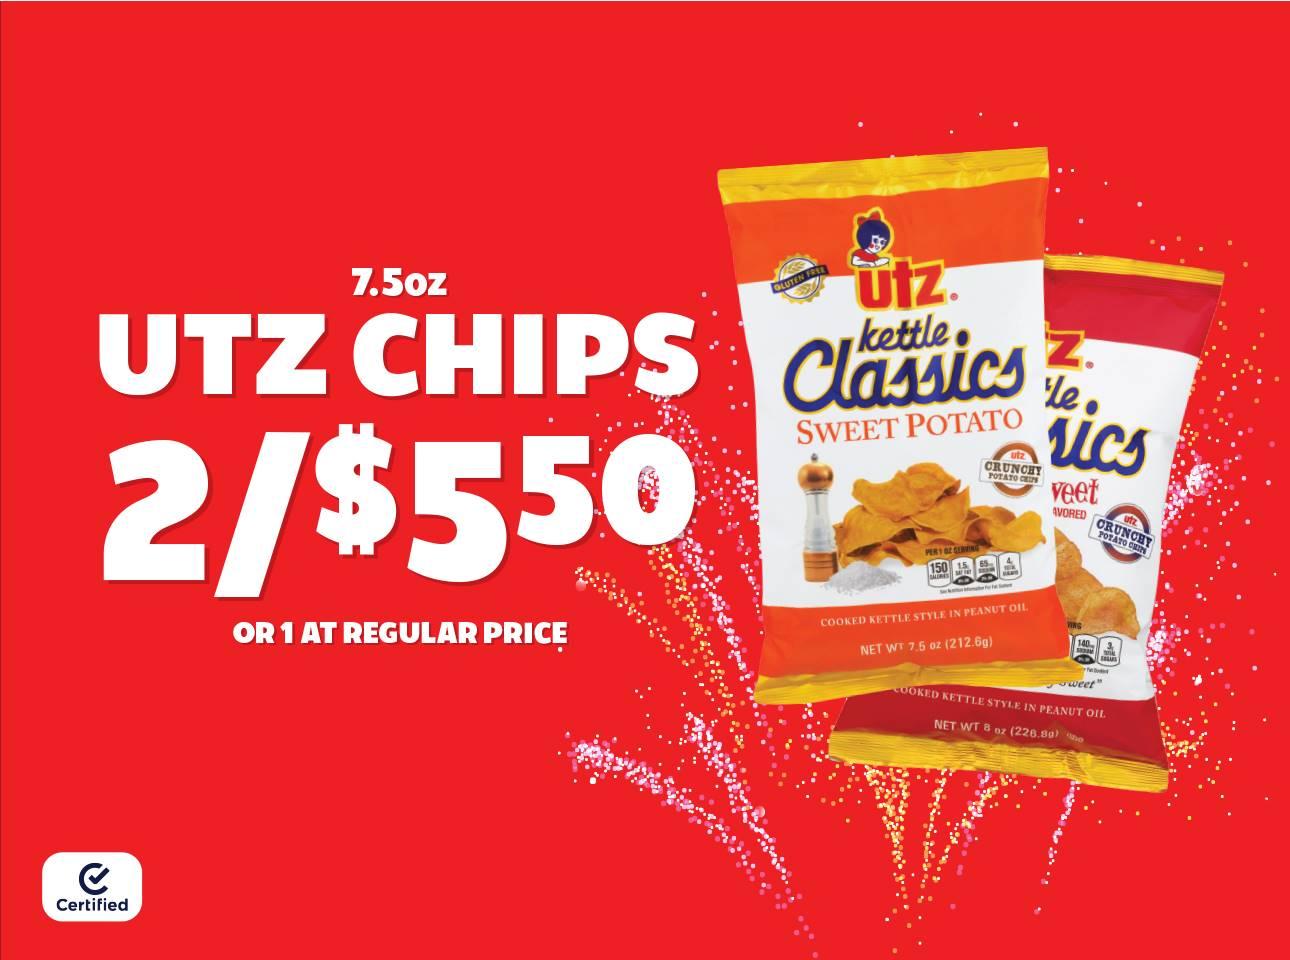 7.5oz Utz Chips 2 for $5.50 or 1 at Reg Price